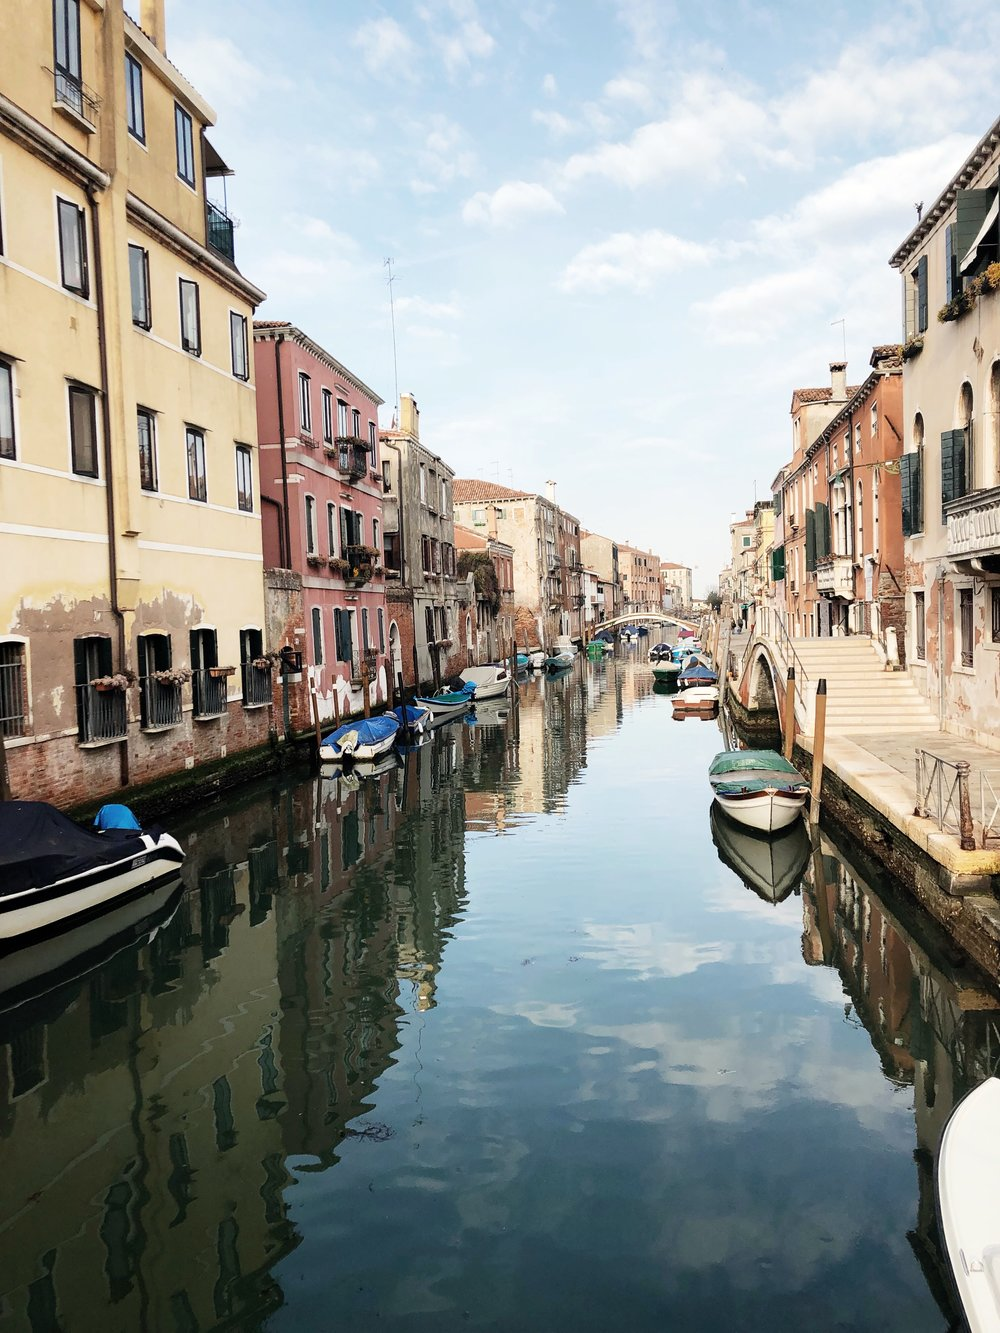 A Weekend Trip to Italy: Venice